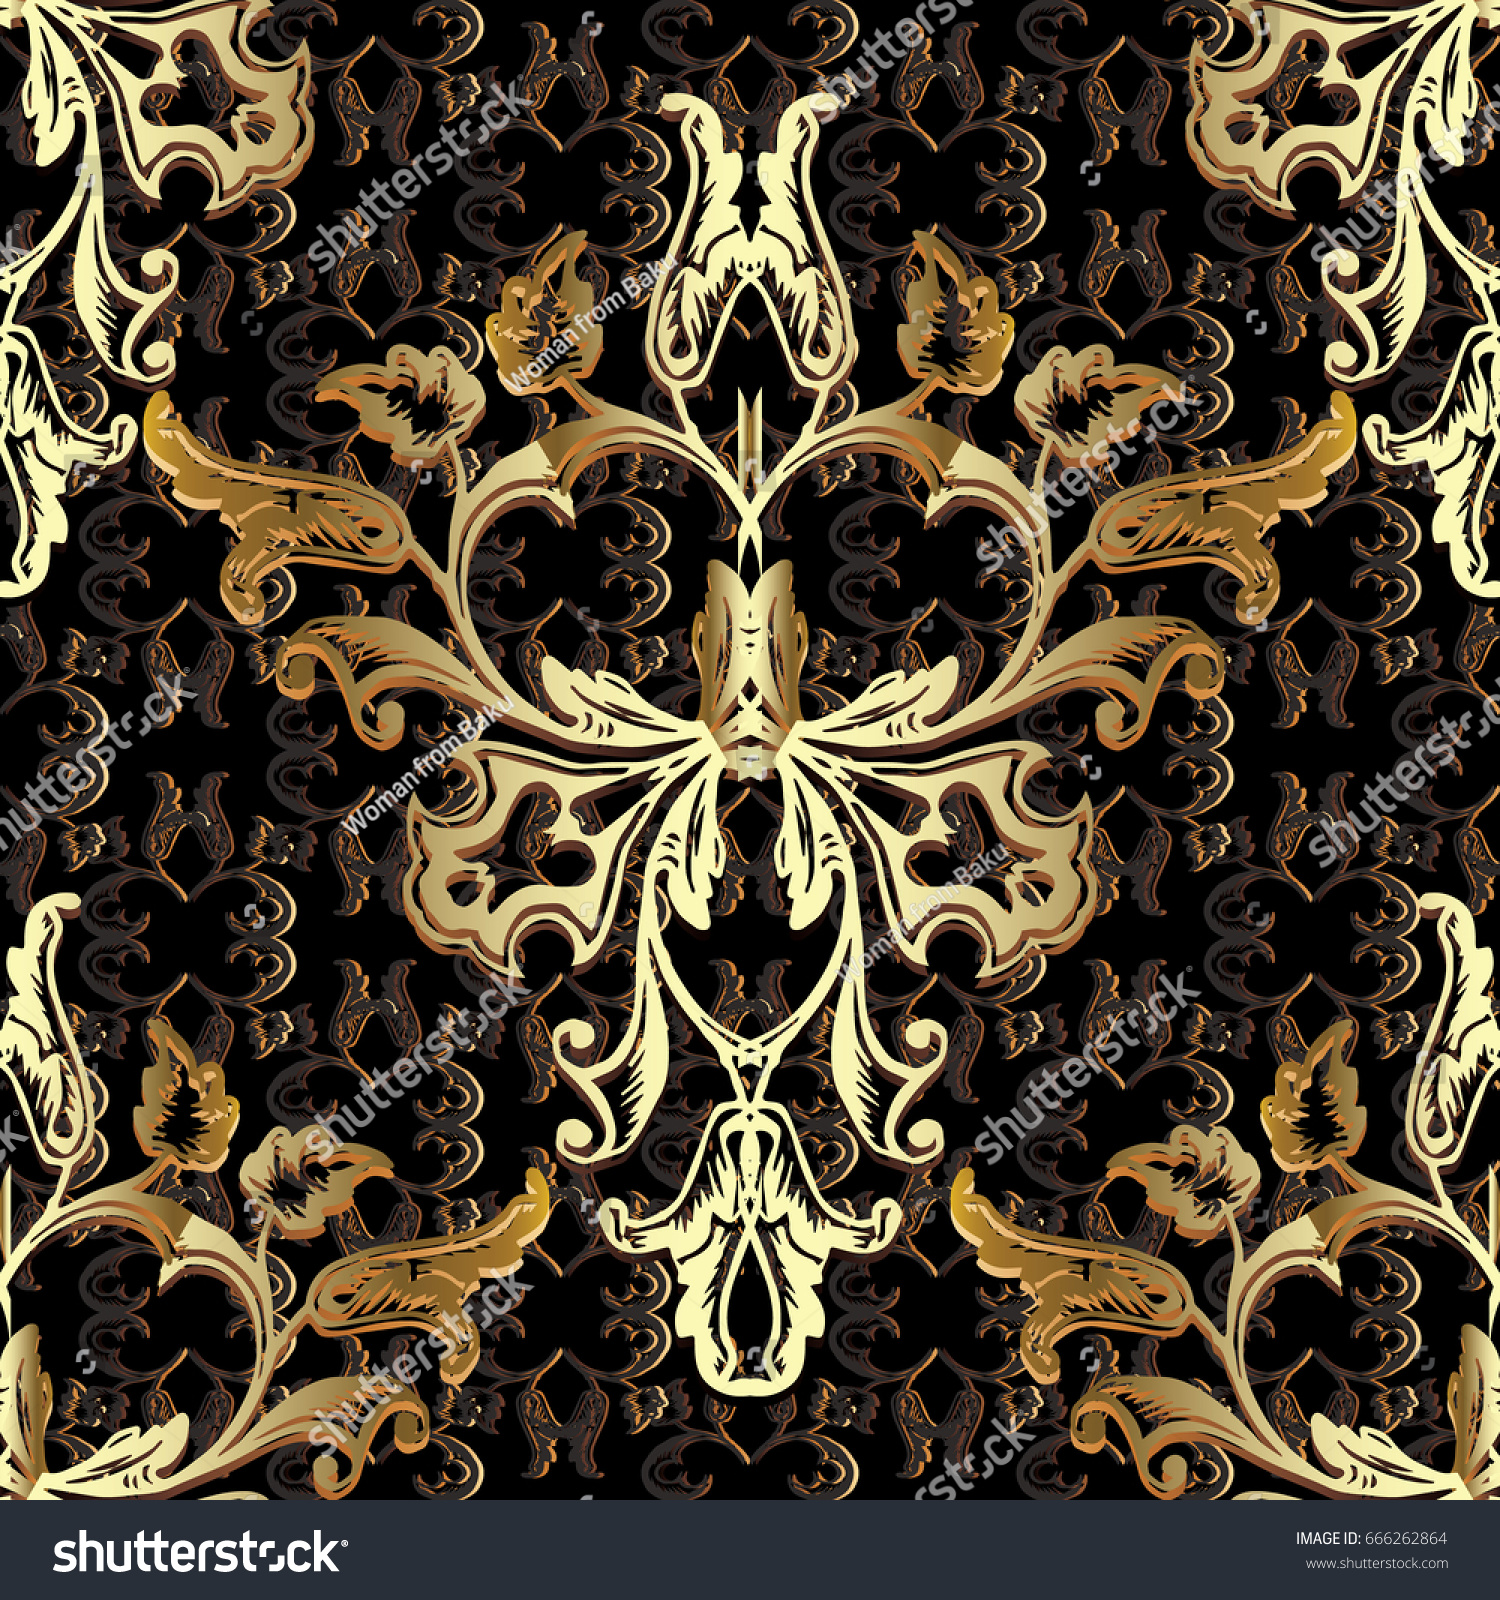 leaf scroll wallpaper vintage patterns - photo #15